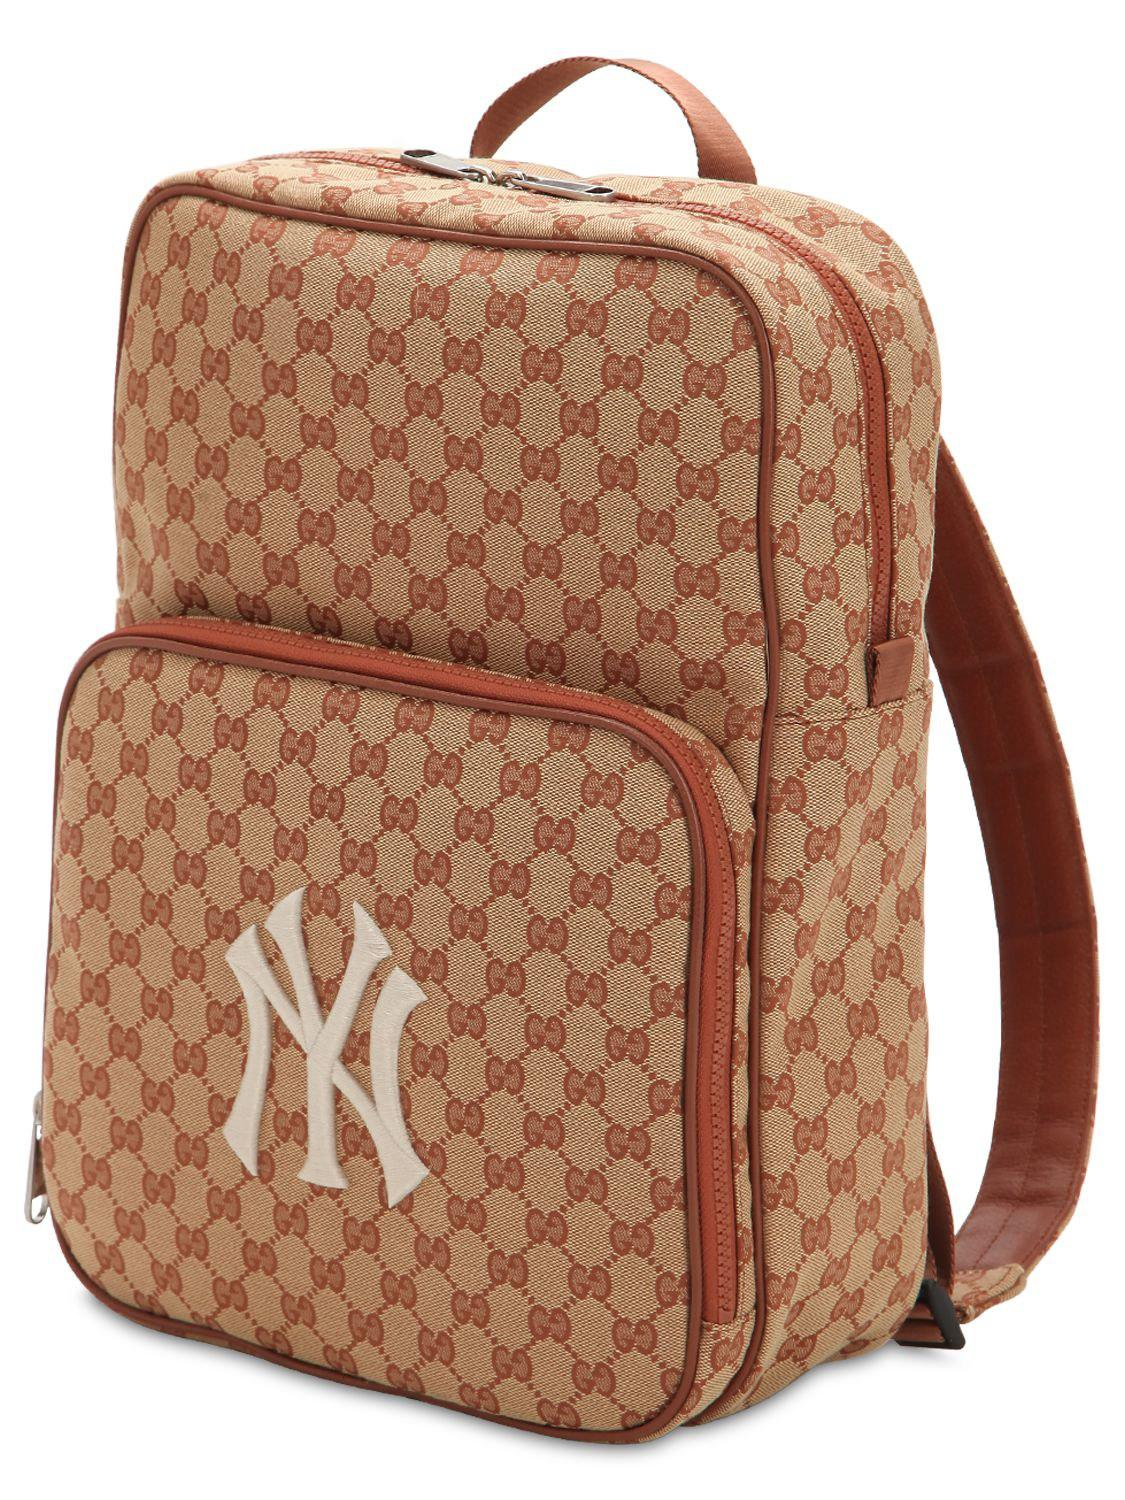 Gucci - Natural Original Gg Supreme Logo Backpack for Men - Lyst. View  fullscreen c5912ebbc0